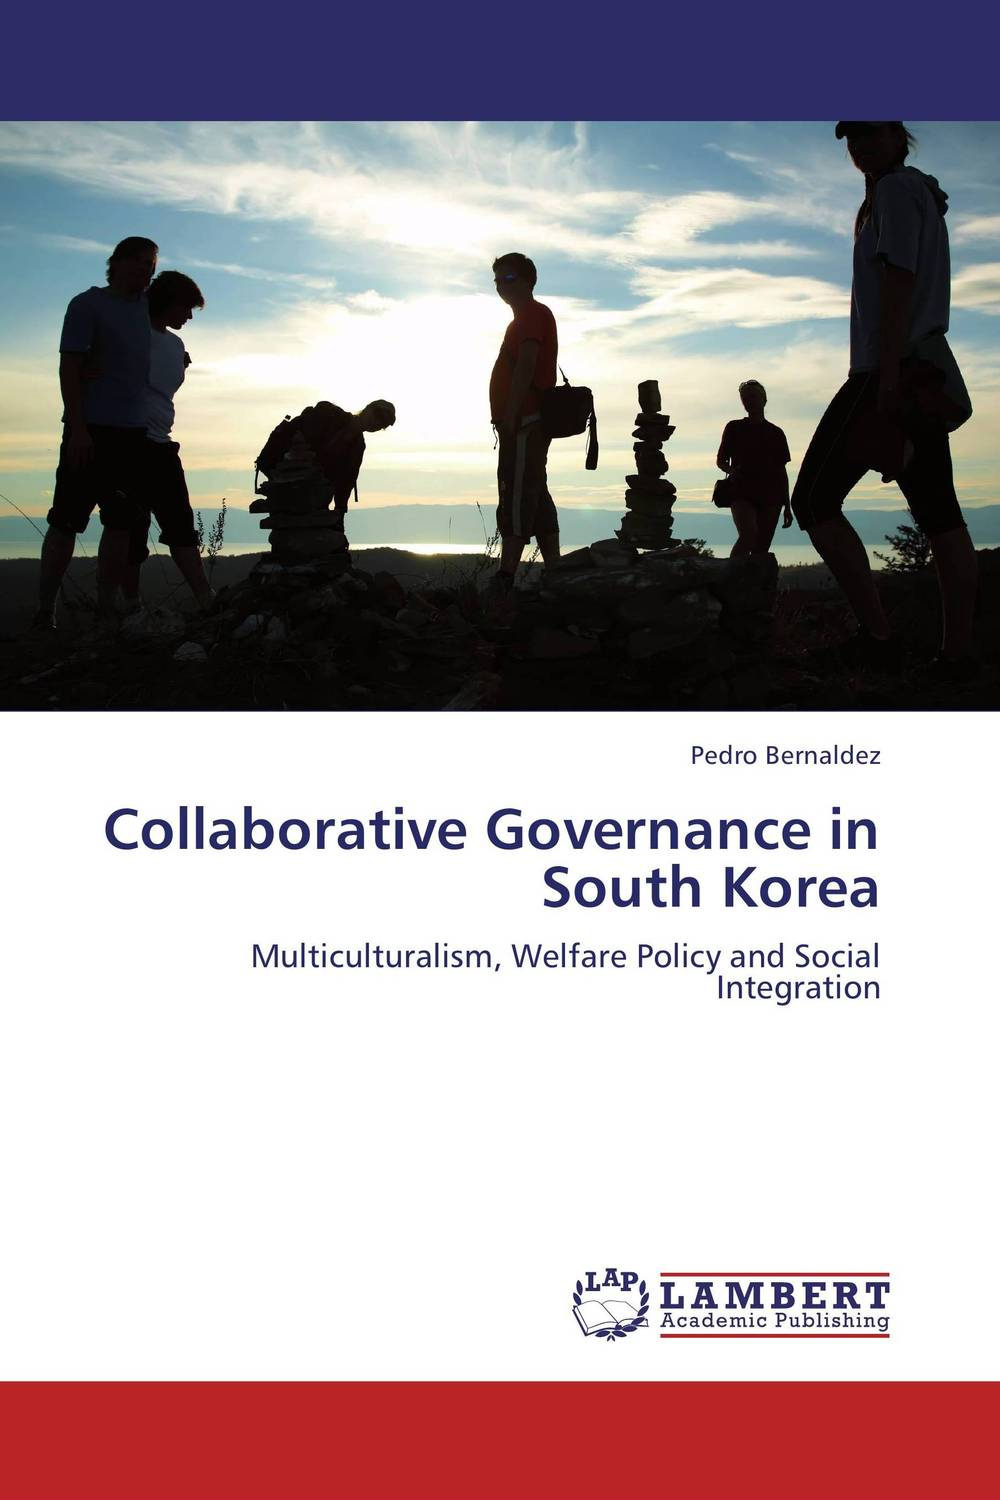 Collaborative Governance in South Korea presidential nominee will address a gathering